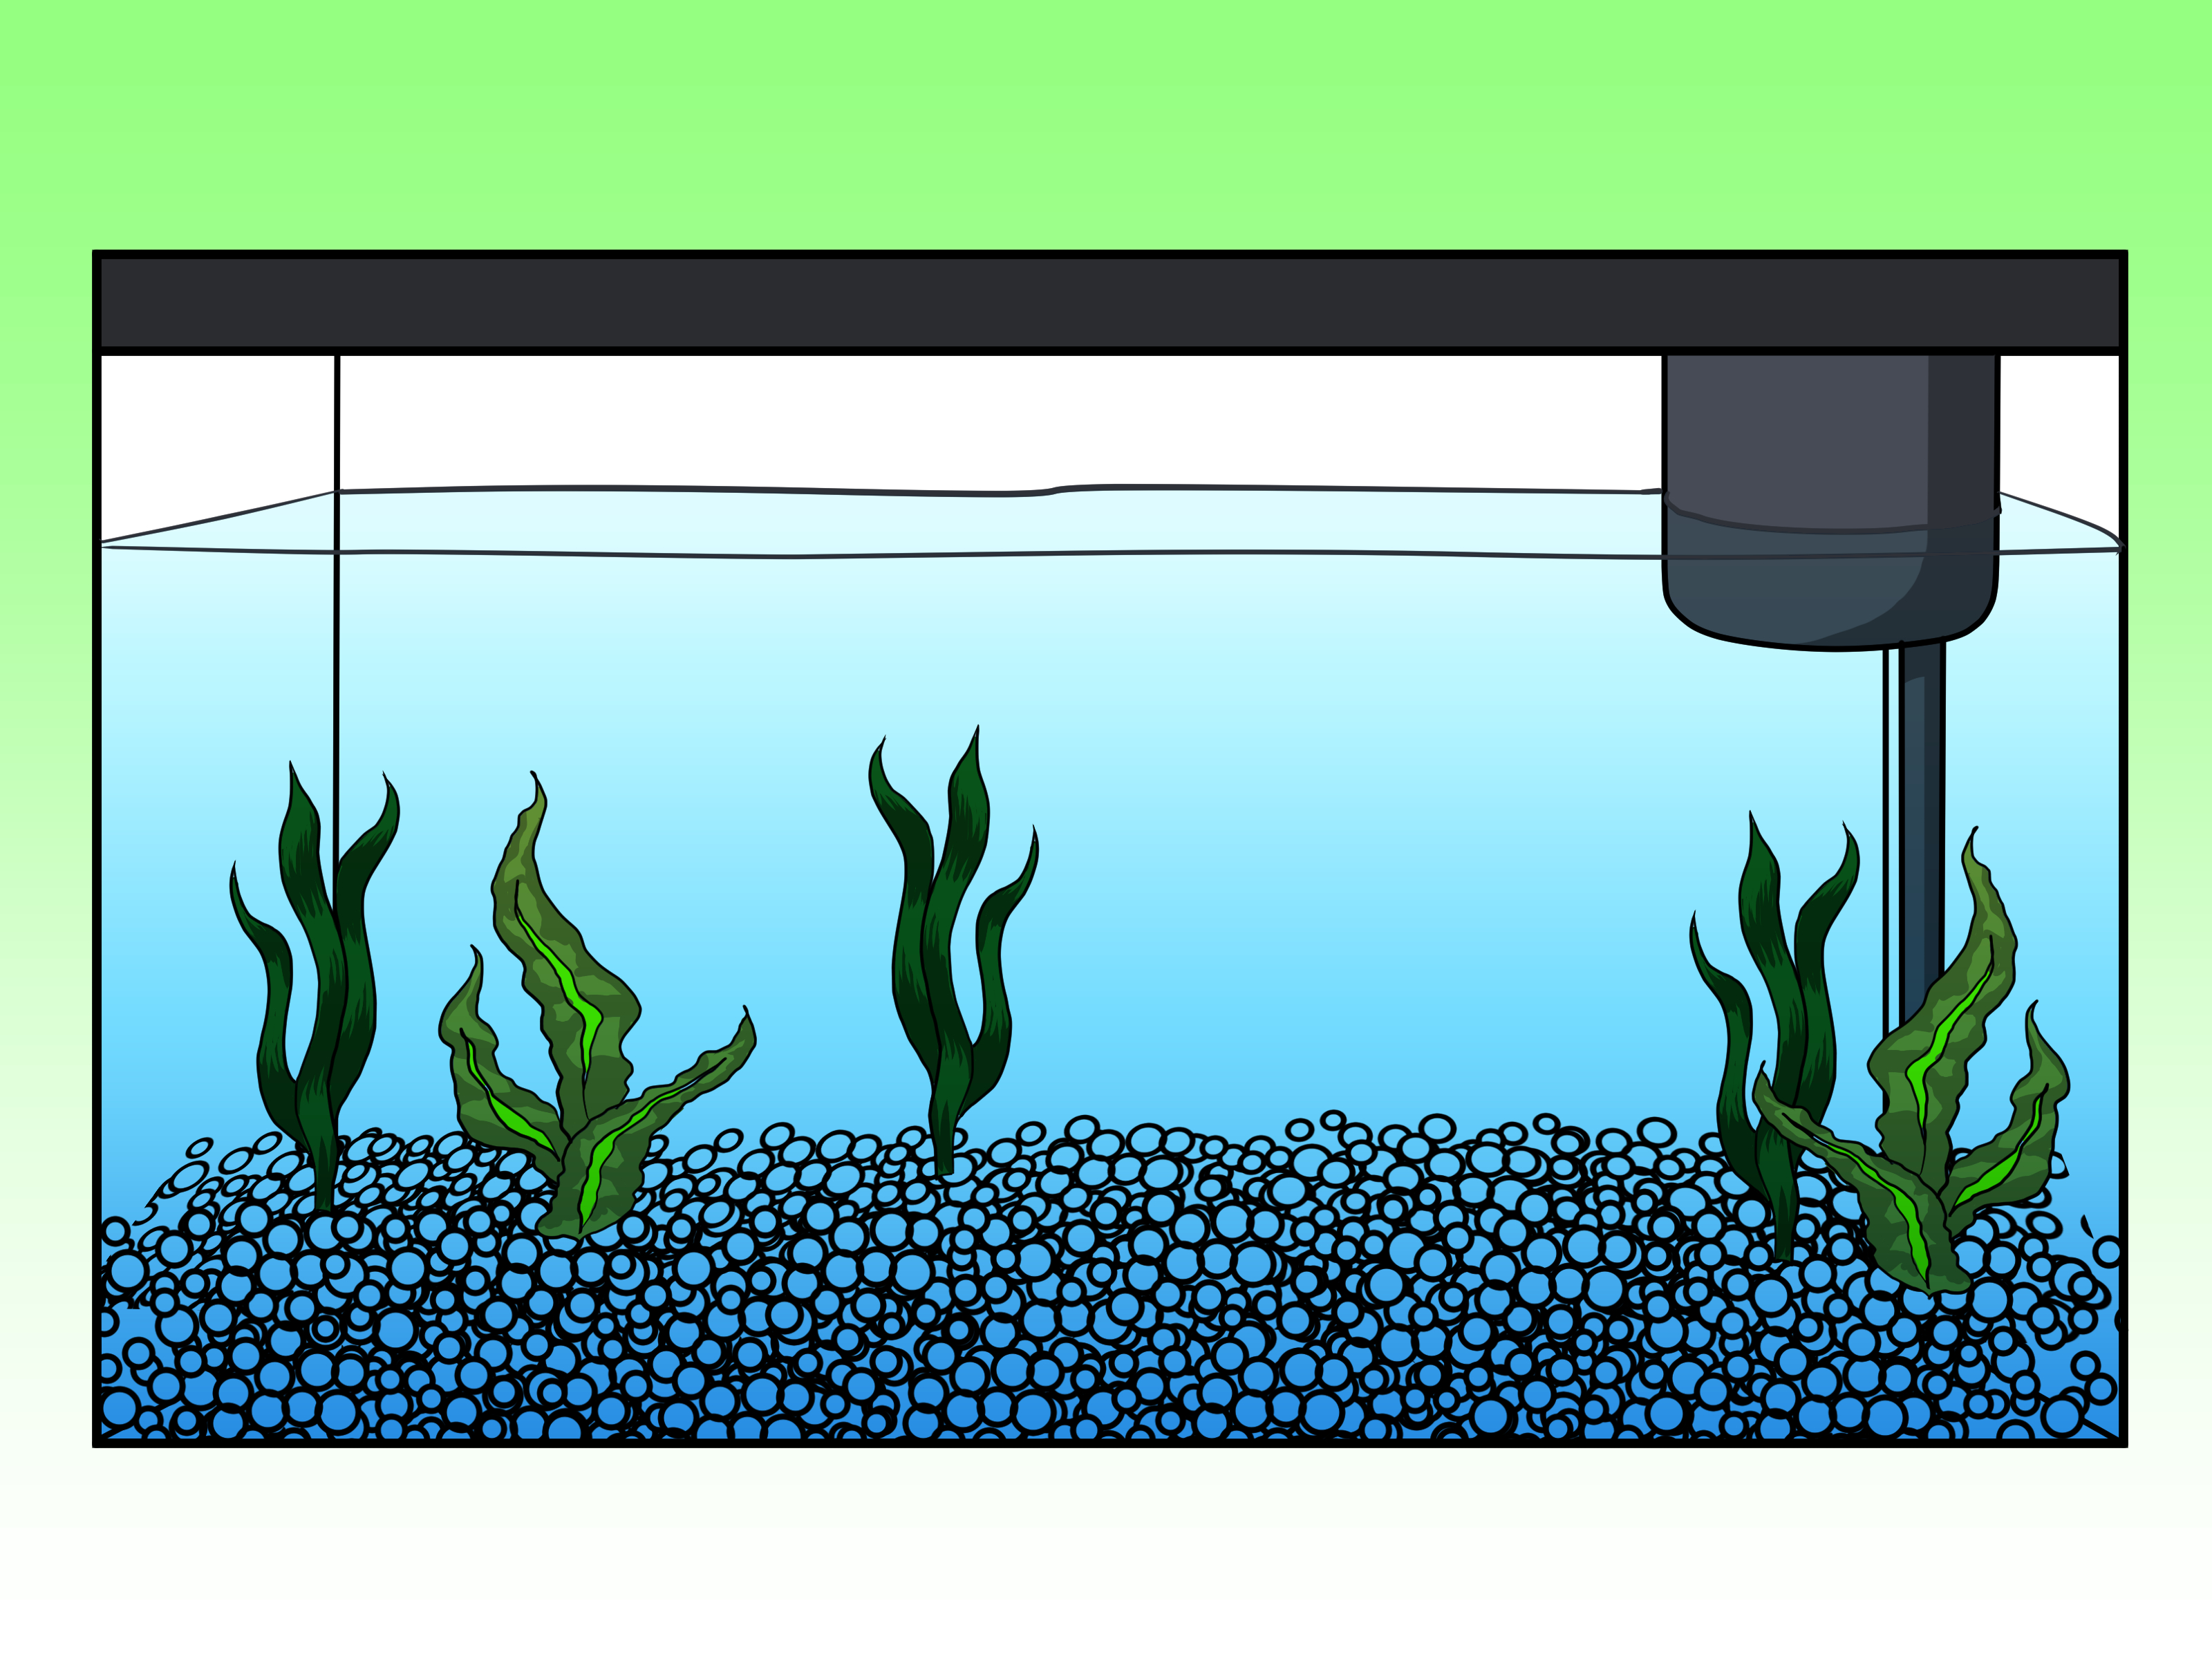 Fish tank drawing at free for personal for Fish scenery drawing